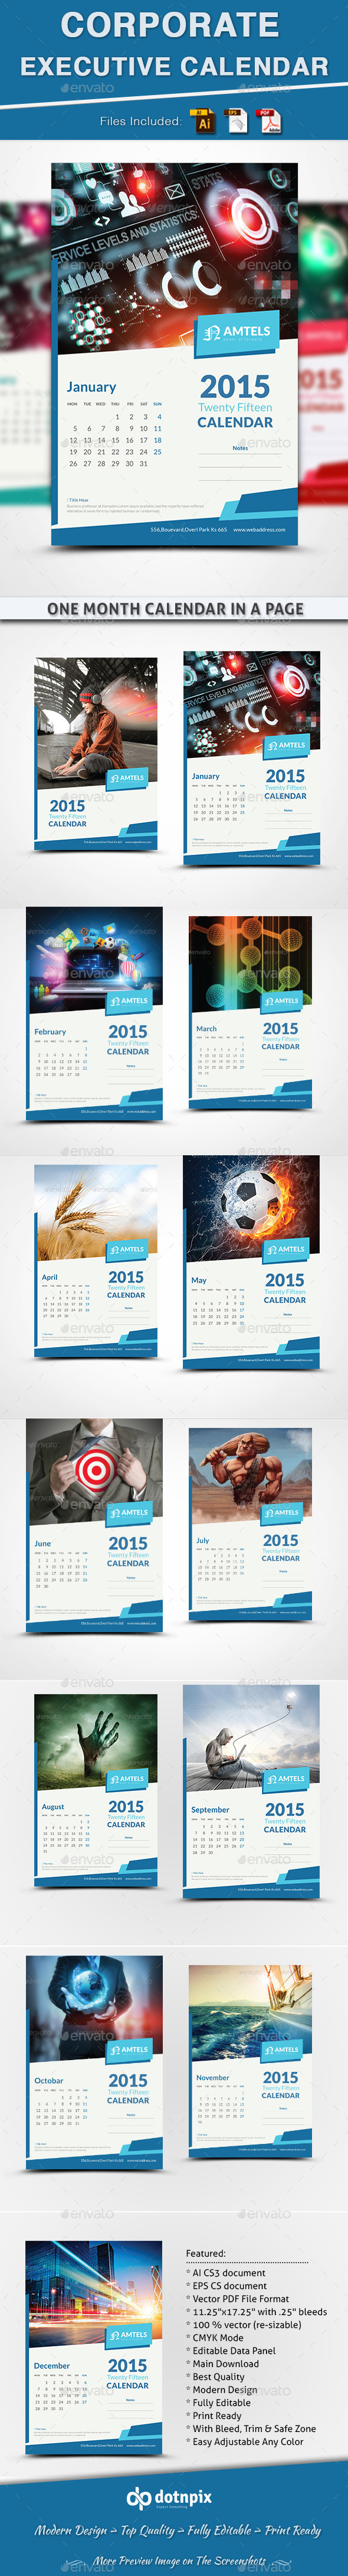 GraphicRiver Corporate Executive Calendar 10488433